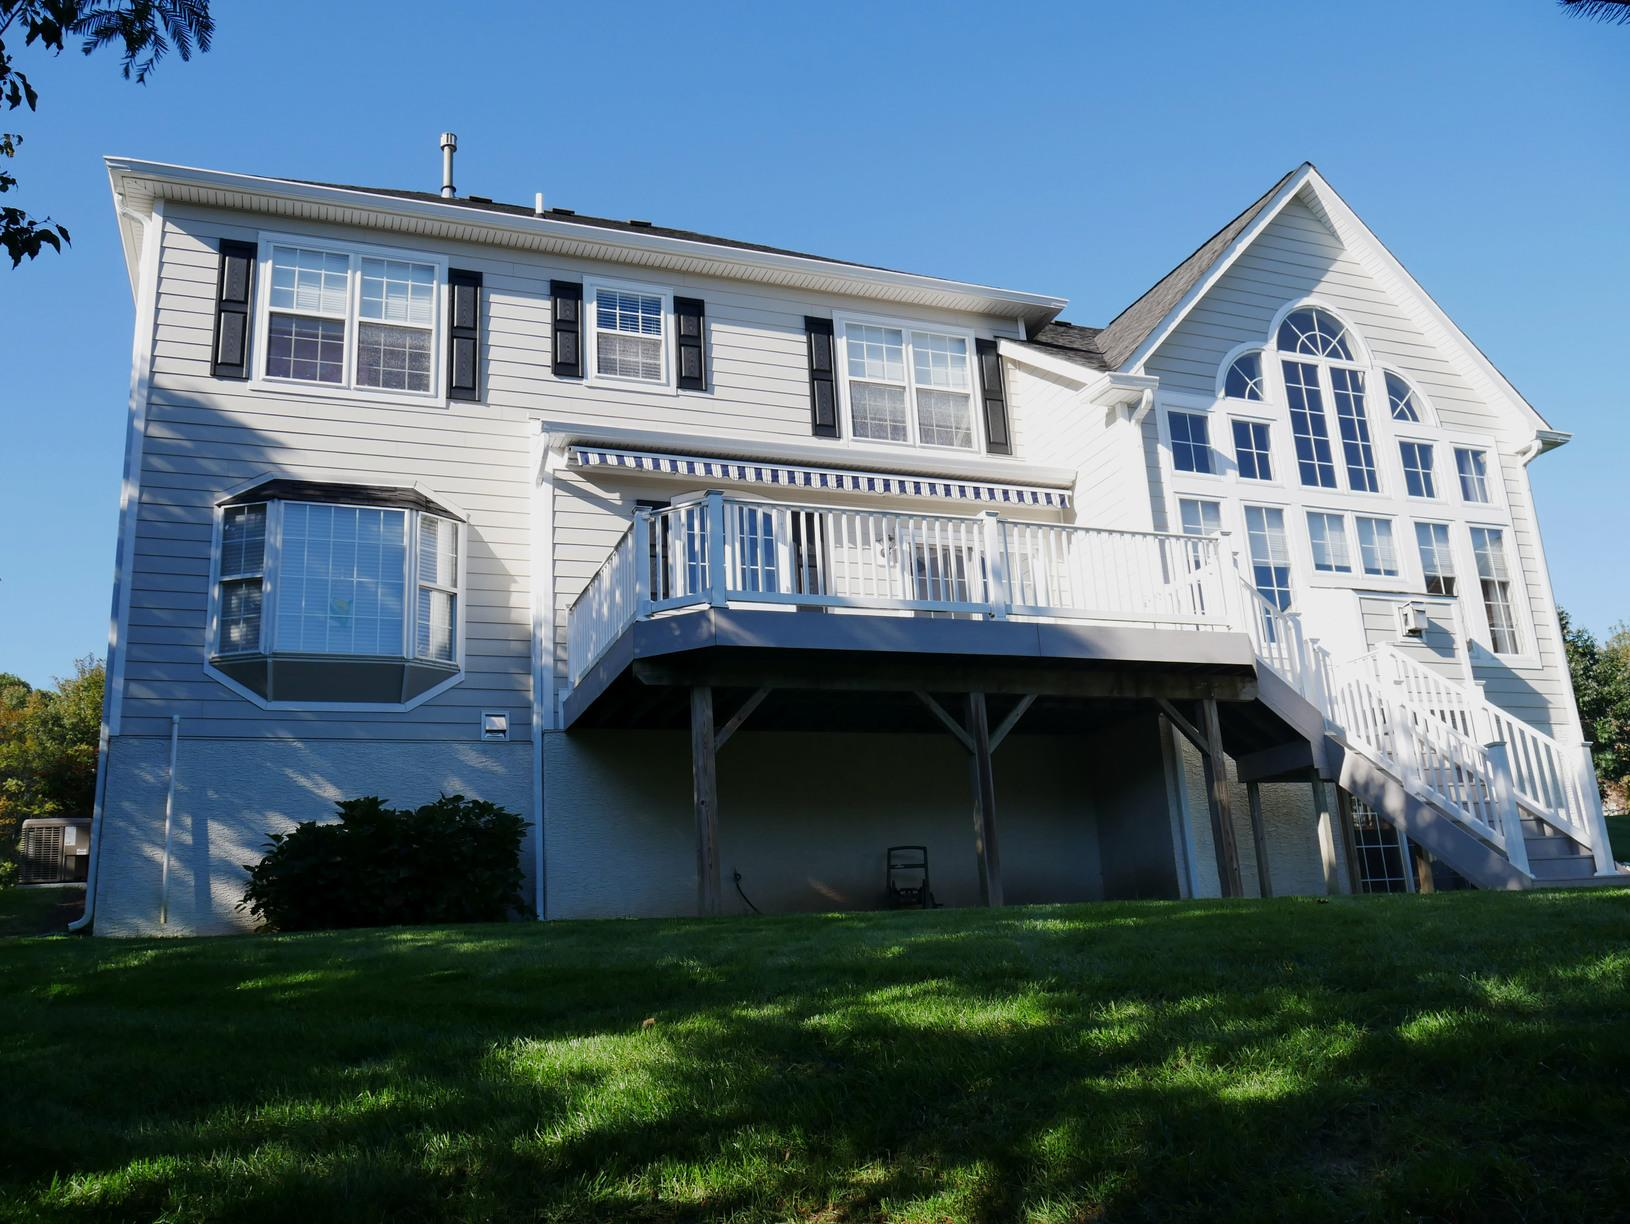 Replacing Moisture-Damaged Stucco with Hardie Planks with Cobble Stone Finish in Doylestown, PA - After Photo